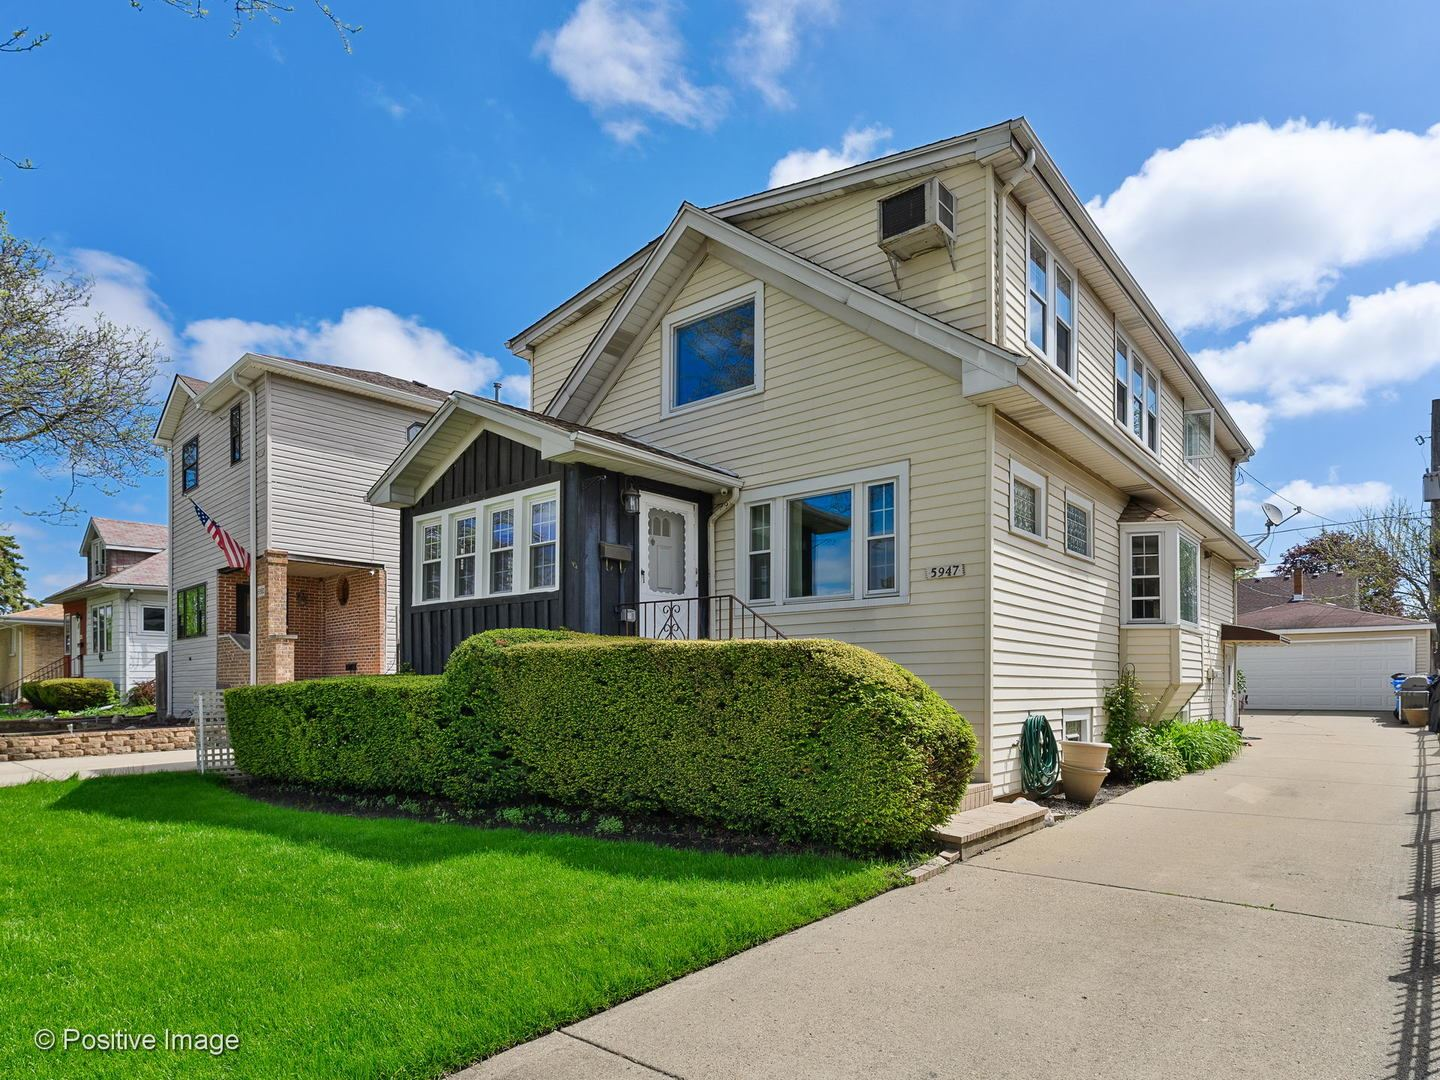 5947 N Ozanam Avenue, Chicago, IL 60631 - #: 10722294